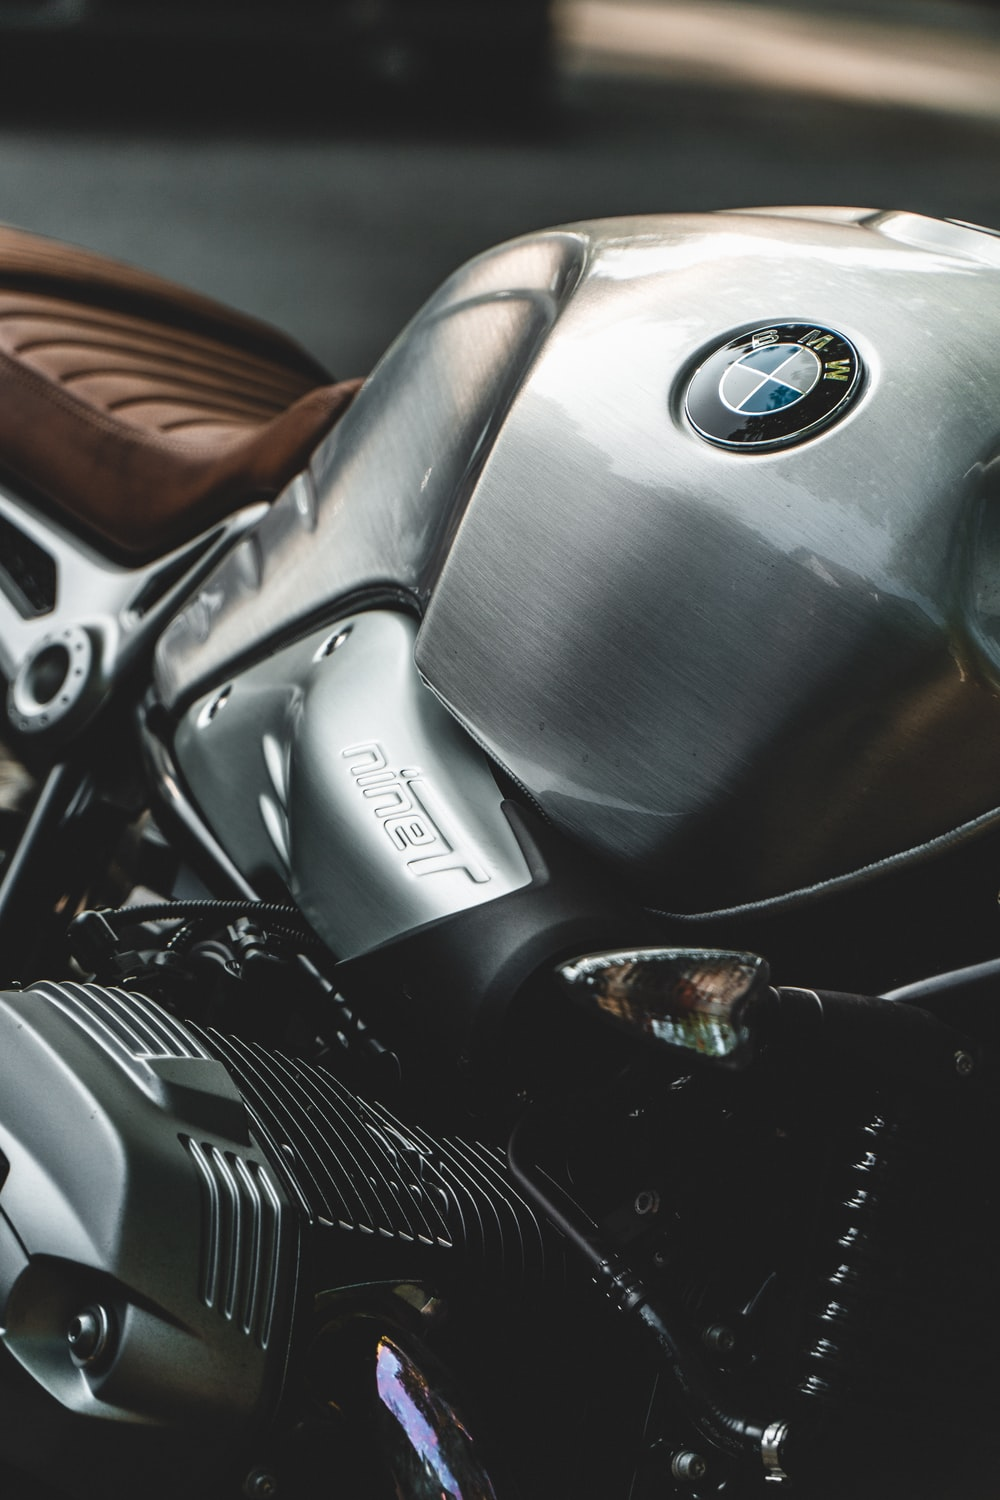 black BMW motorcycle